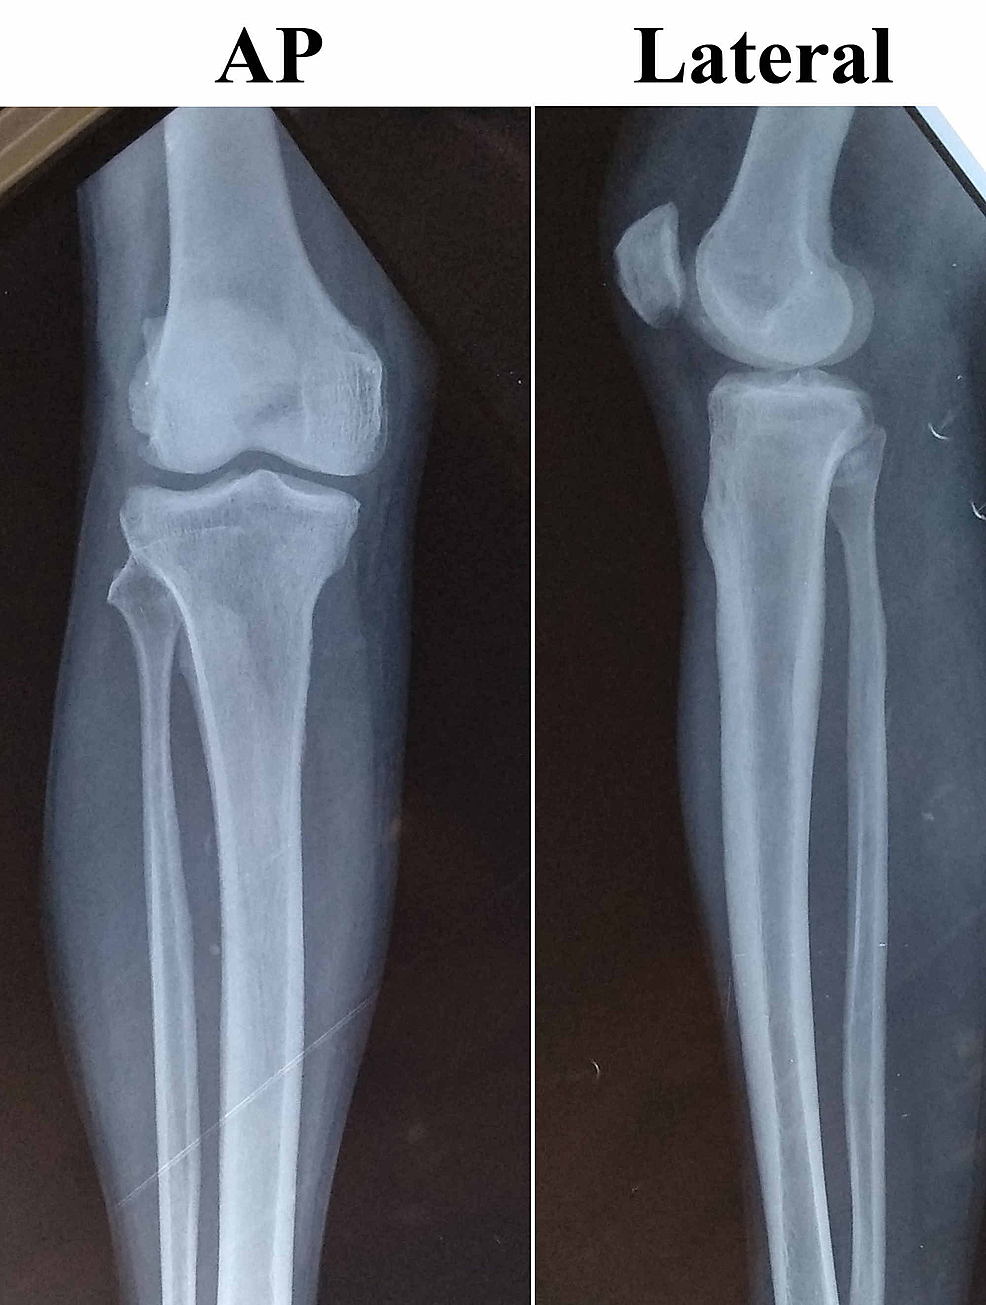 The-preoperative-X-ray-of-the-right-knee-joint-with-proximal-leg-and-distal-thigh-showing-no-osteomyelitic-changes.